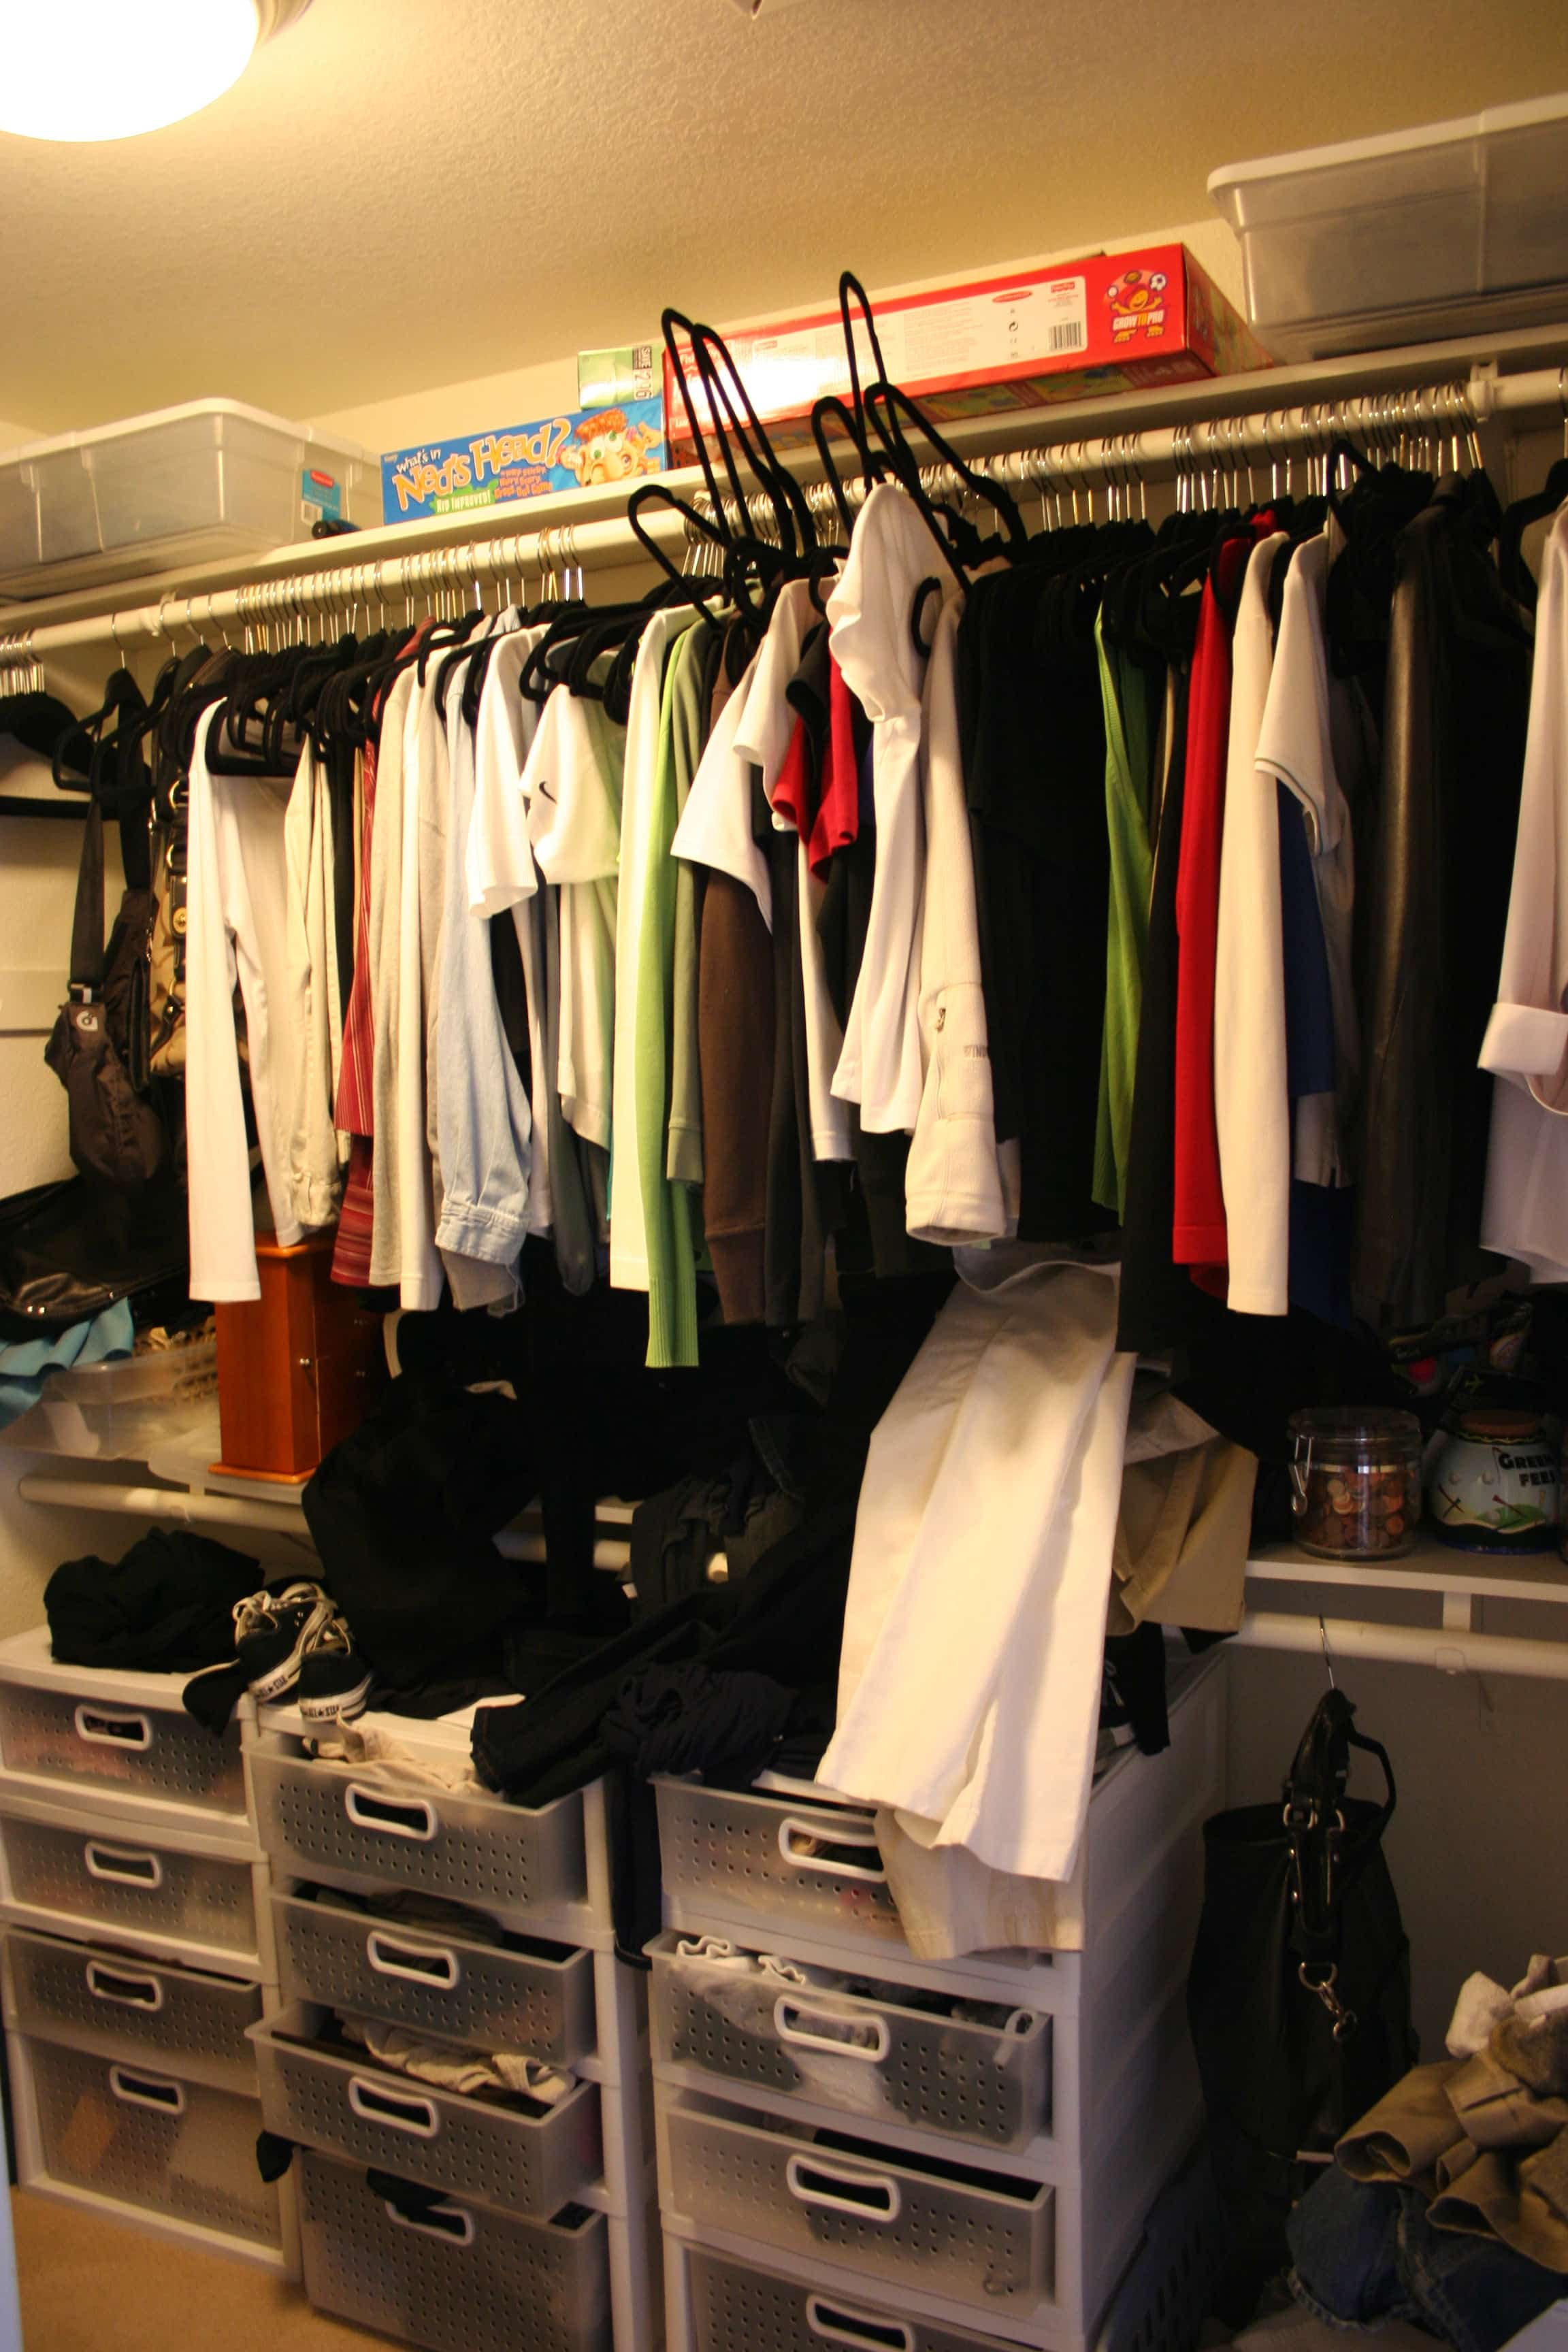 Don't Judge Me By My Messy Closet